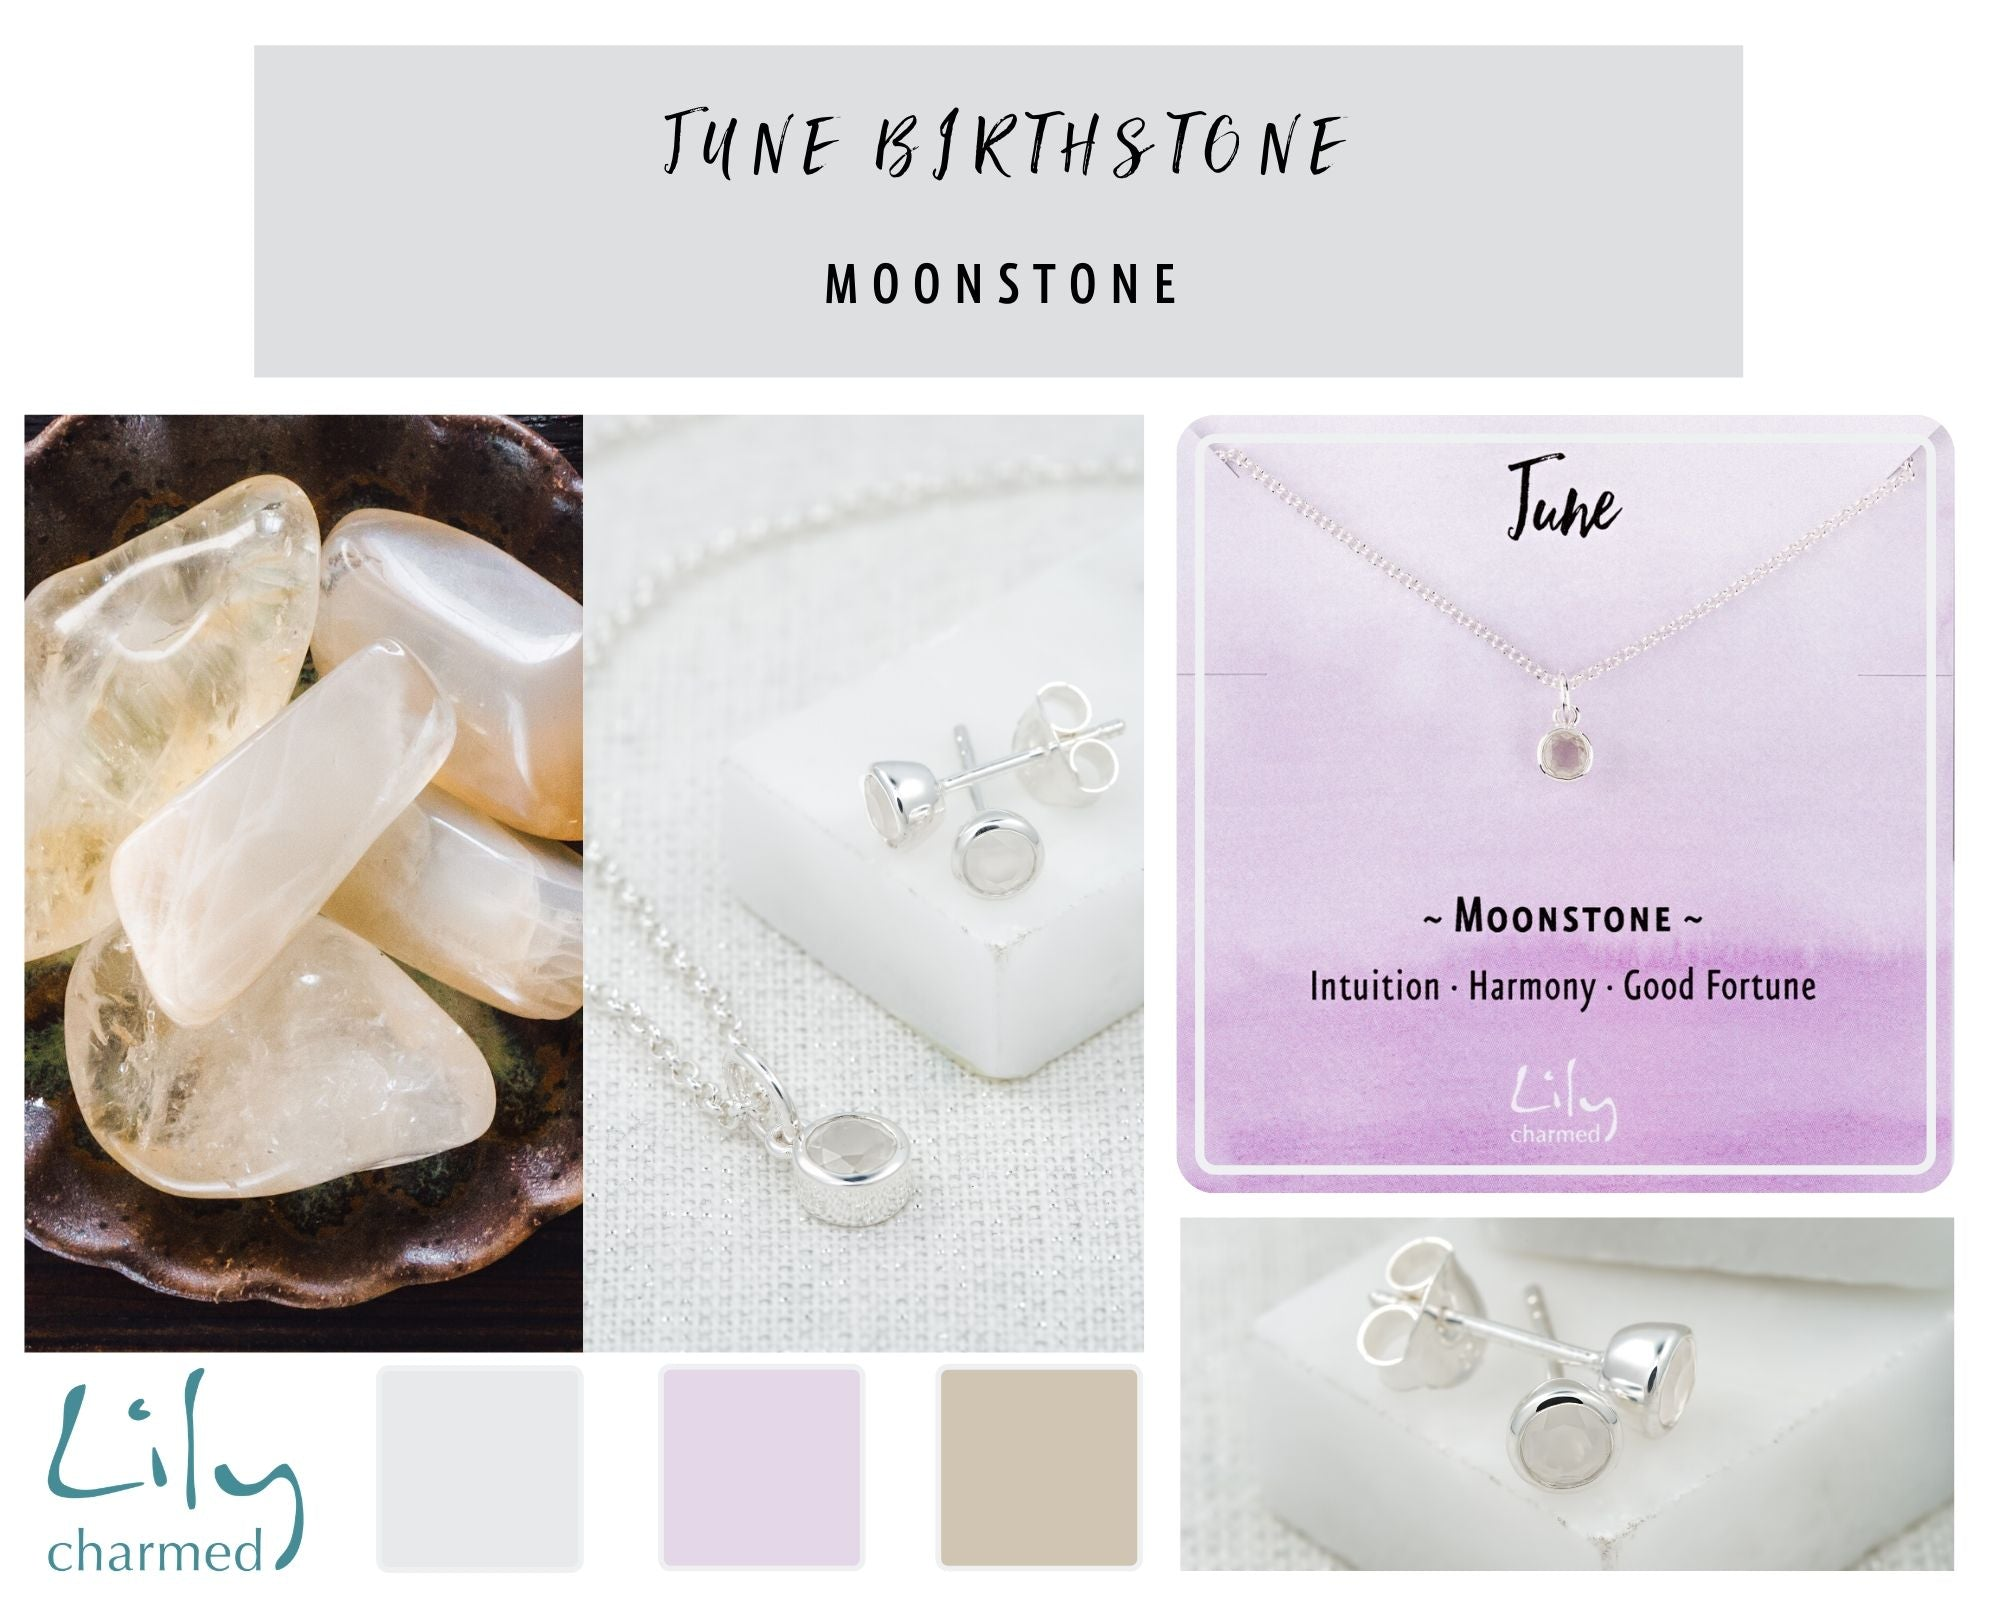 June Birthstone moonstone